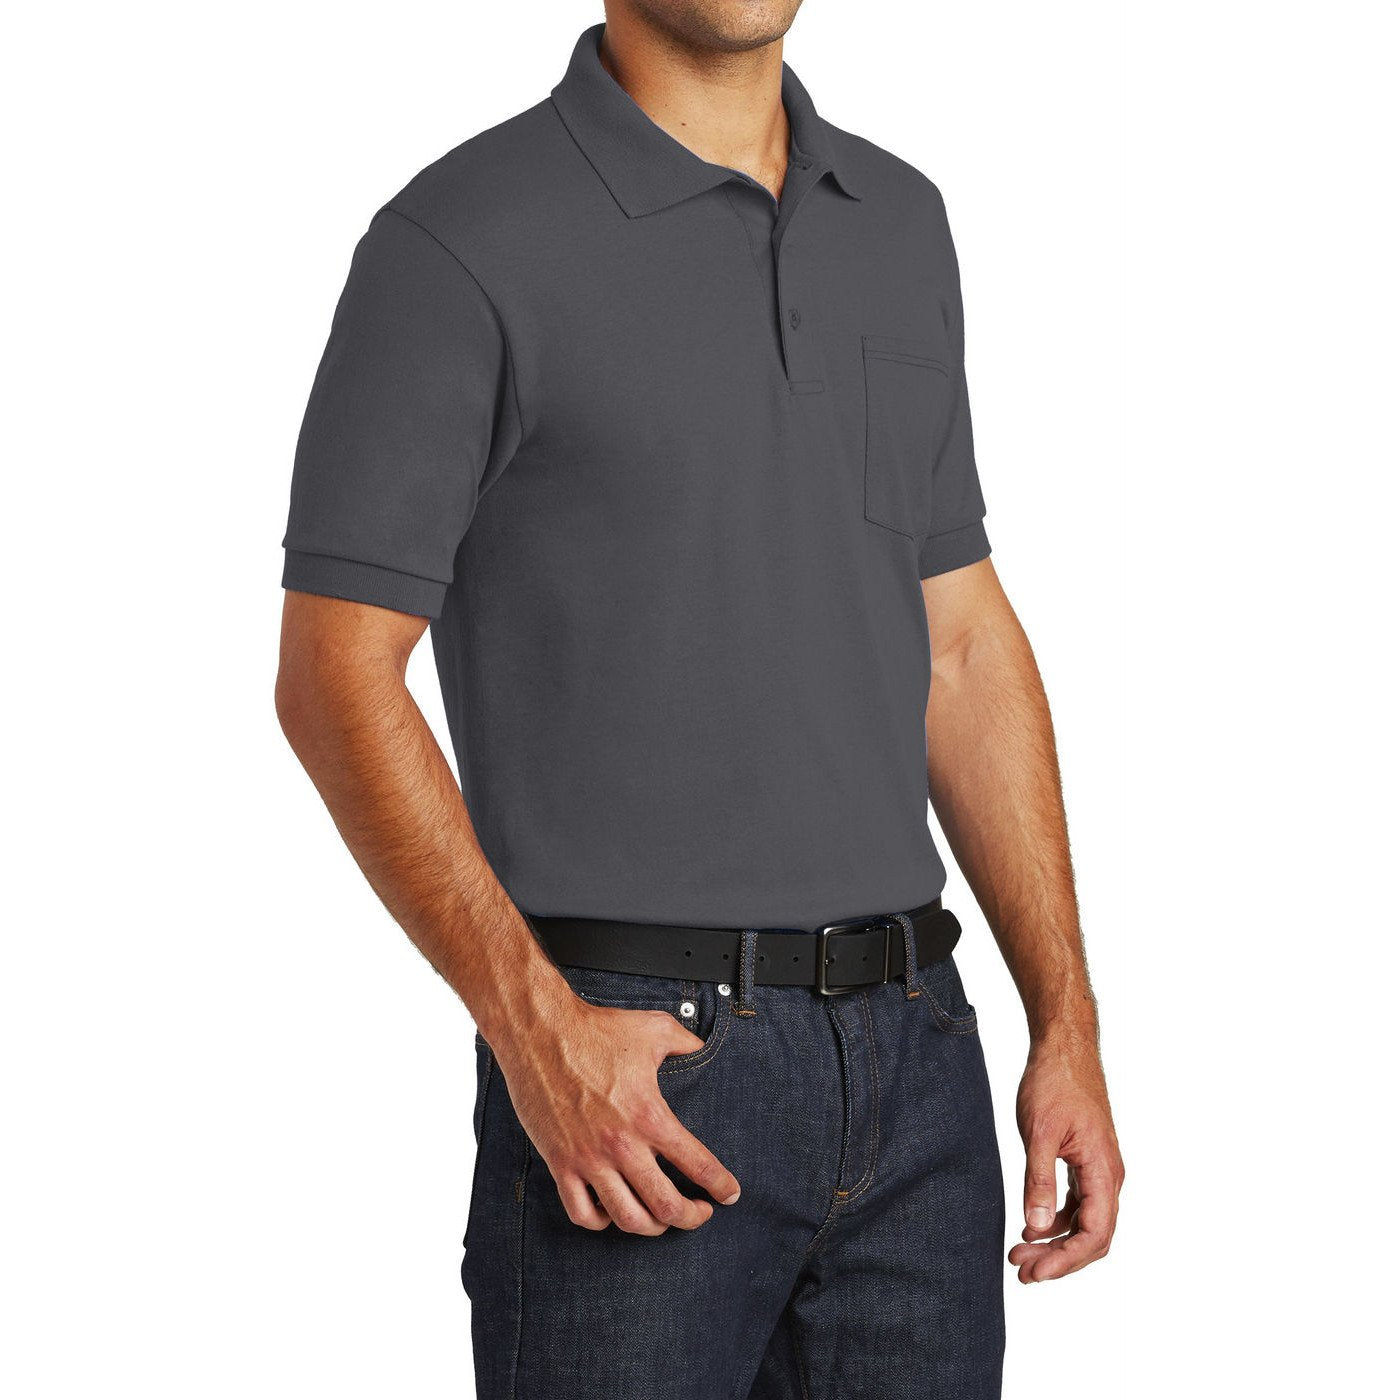 Mafoose Men's Core Blend Jersey Knit Pocket Polo Shirt Charcoal